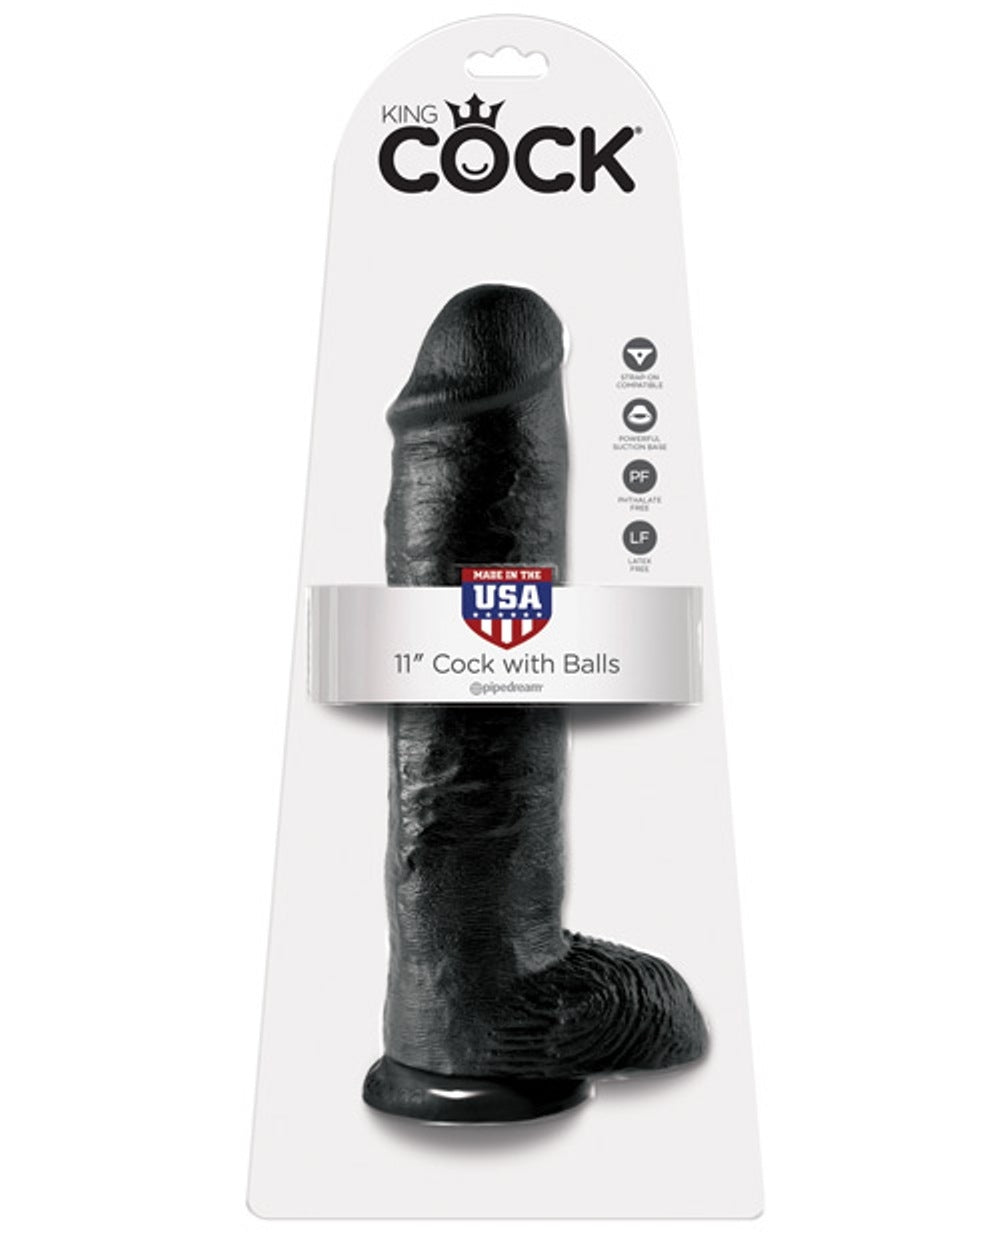 King Cock with balls 11"